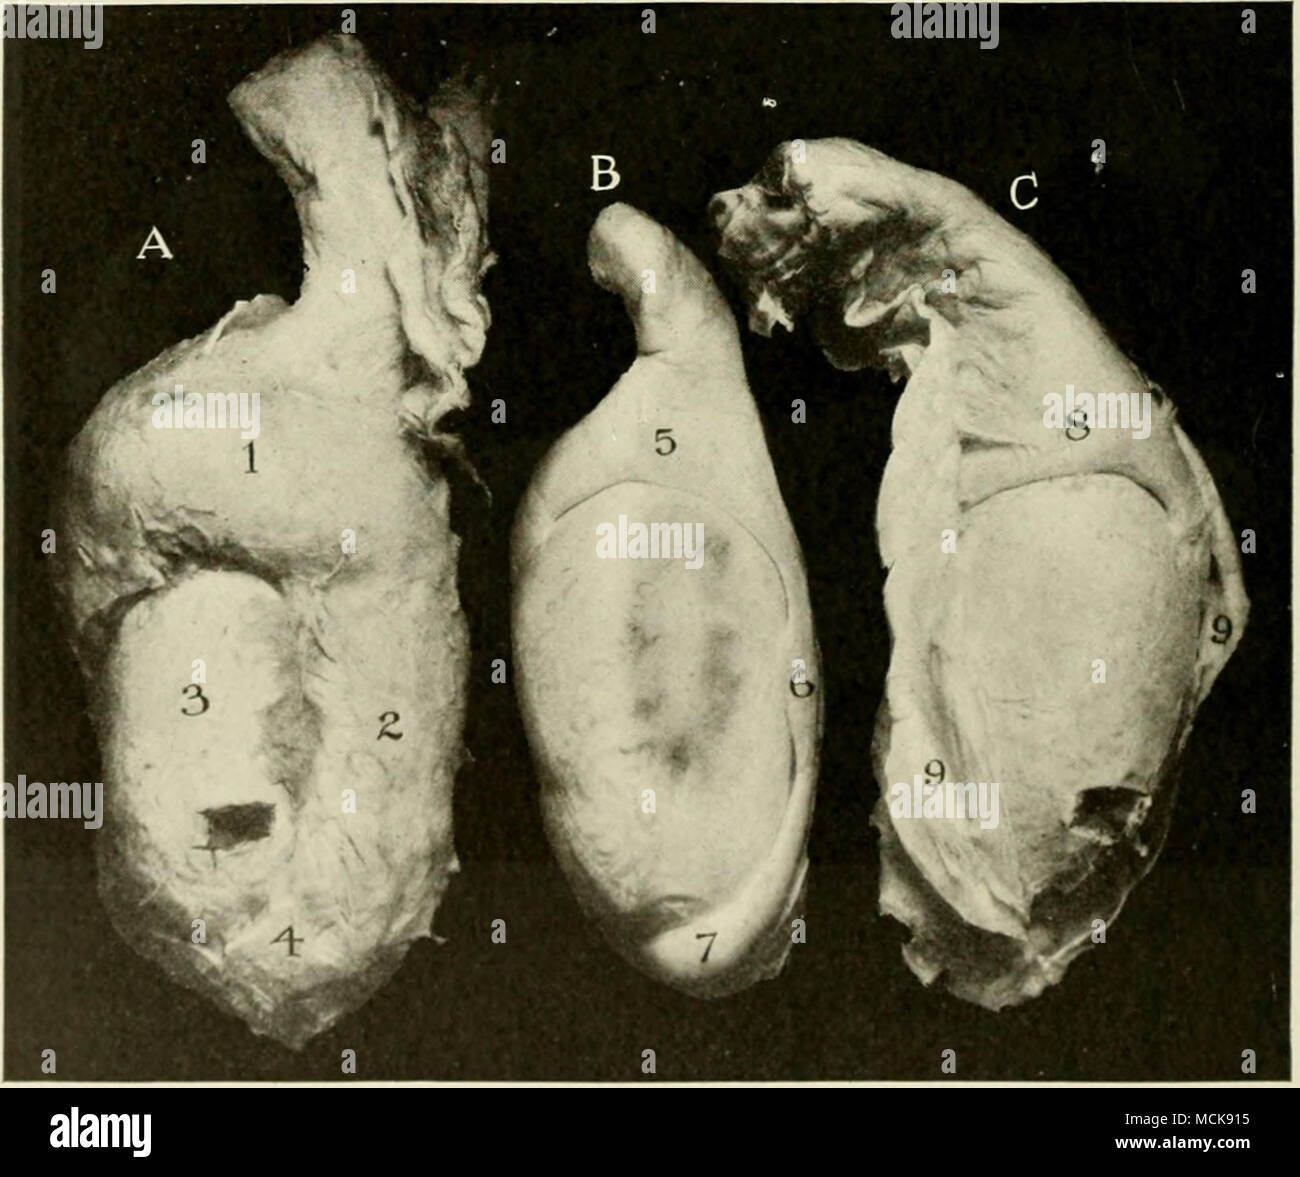 . FlG. 126—Orchitis and Epididymitis. Bull. /, Left testis ; />', normal left testis for comparison ; C, Right testis. /, Globus major of epididymis, greatly enlarged and adherent to testis ; , /, tail of epididymis; 5, 6, -, normal globus major, body and globus minor of epididymis respectively; 8, inflamed globus major; o, parietal Scrotal peritoneum adherent to testicle, incised and turned back. 3. Epididymitis of Adult Bulls Epididymitis develops occasionally in adult bulls which have a history of normal fertility over a somewhat ex- - Stock Image